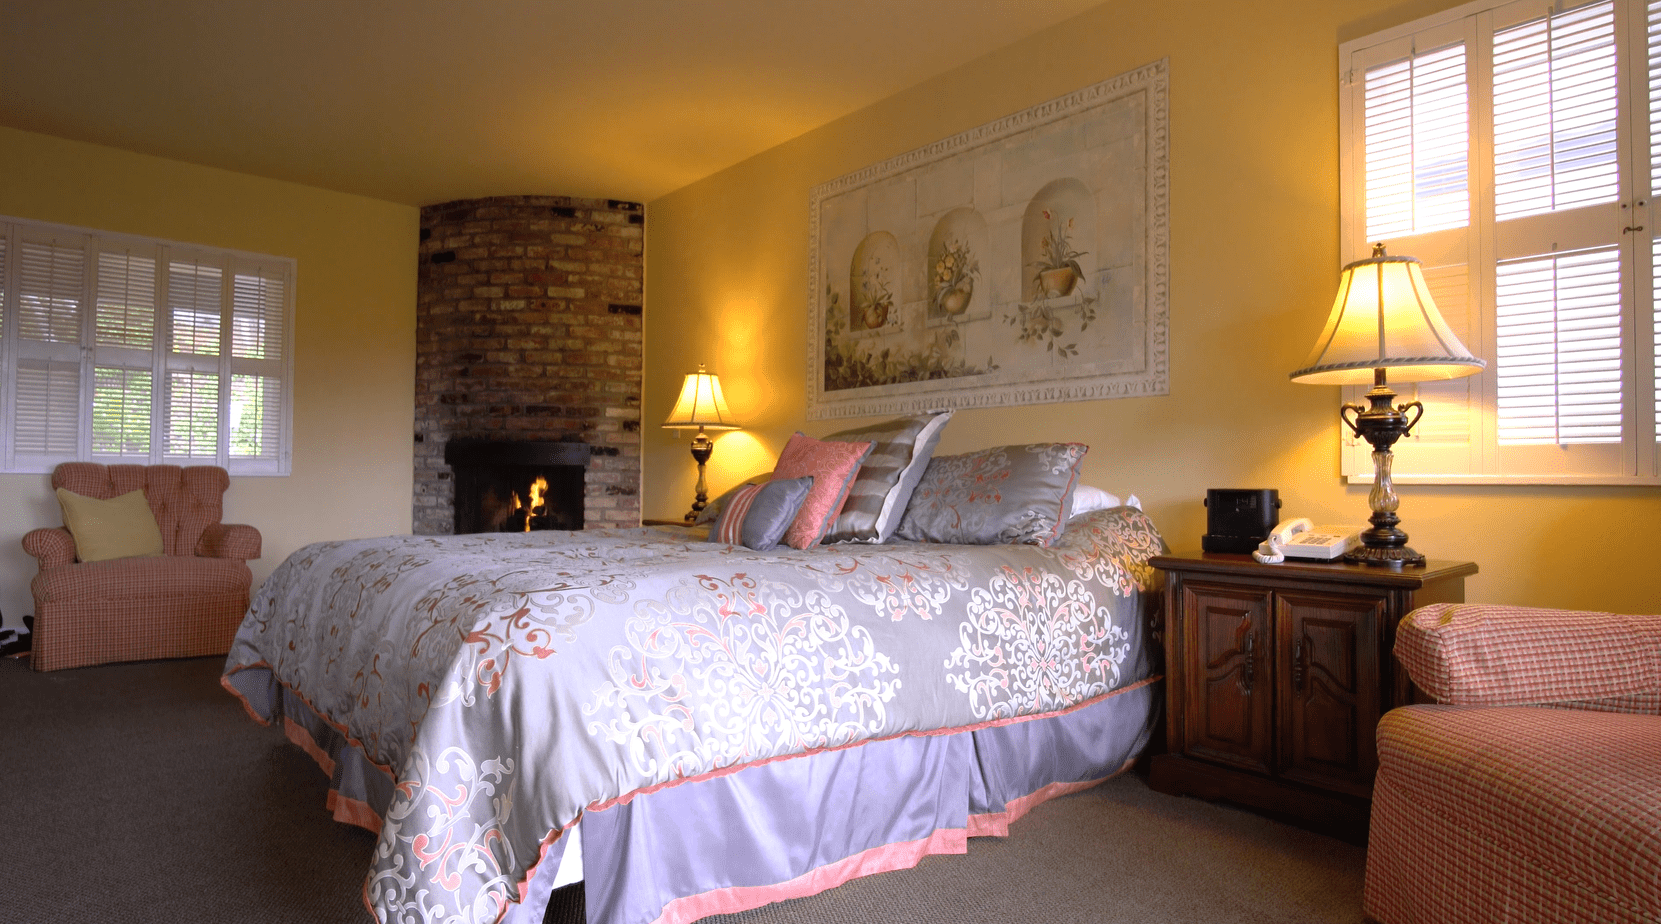 Hofsas House: Boutique Hotel in Carmel 2